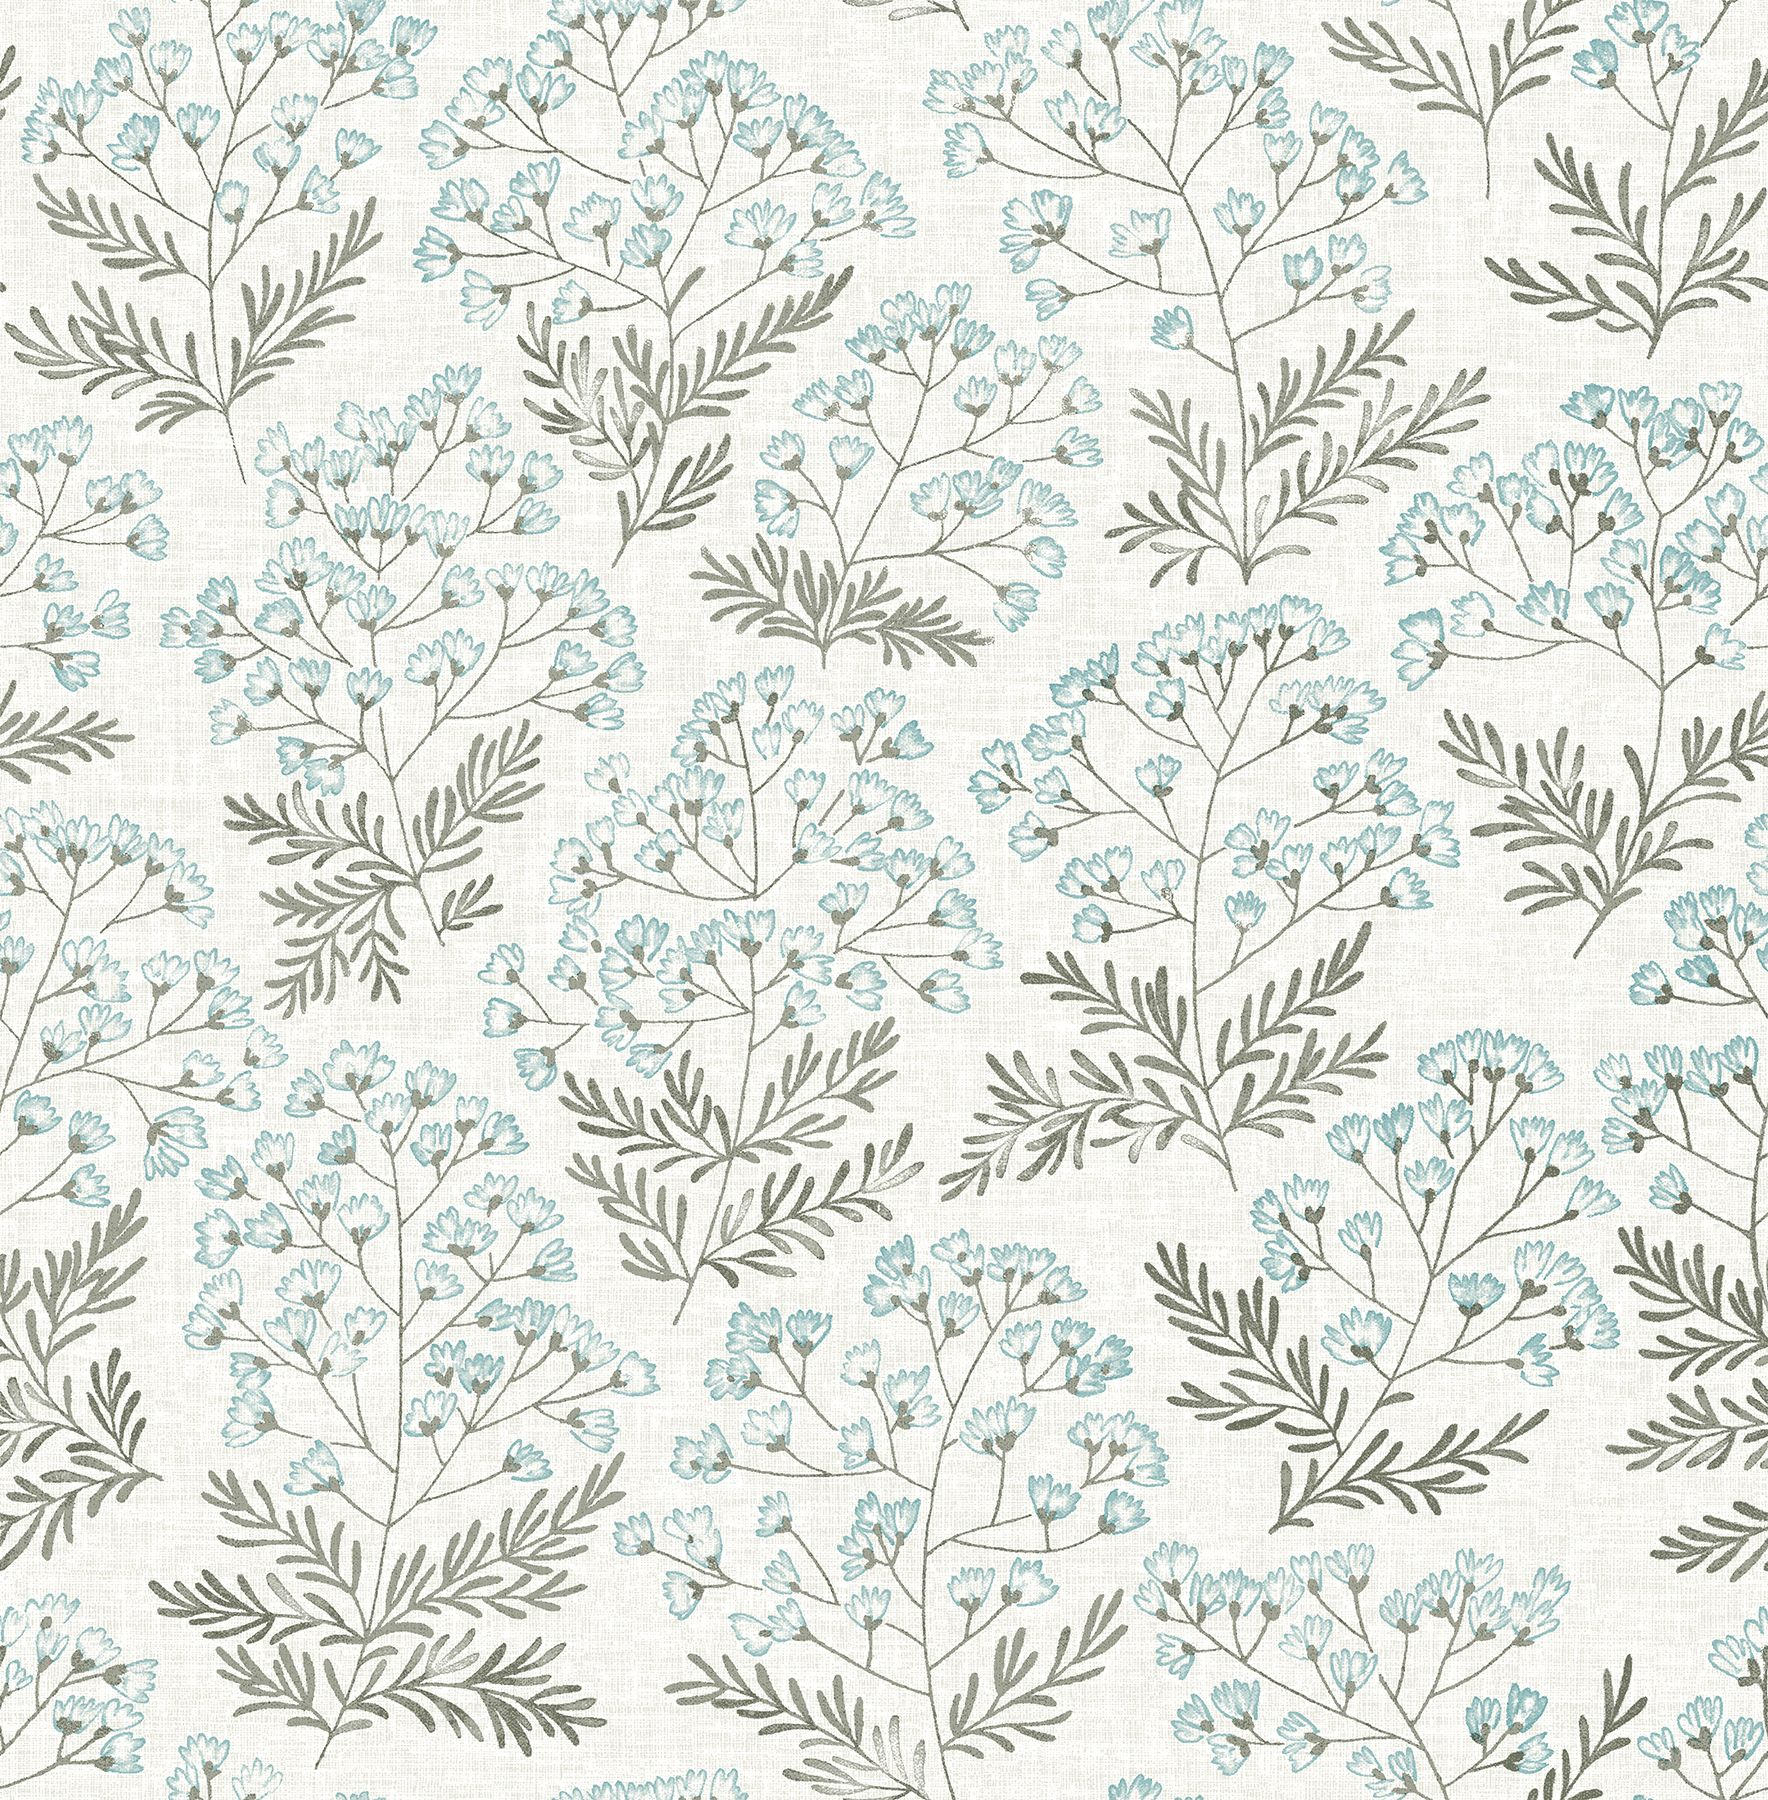 Floret Blue Floral Wallpaper Blue Floral Wallpaper Floral Wallpaper Wallpaper Samples